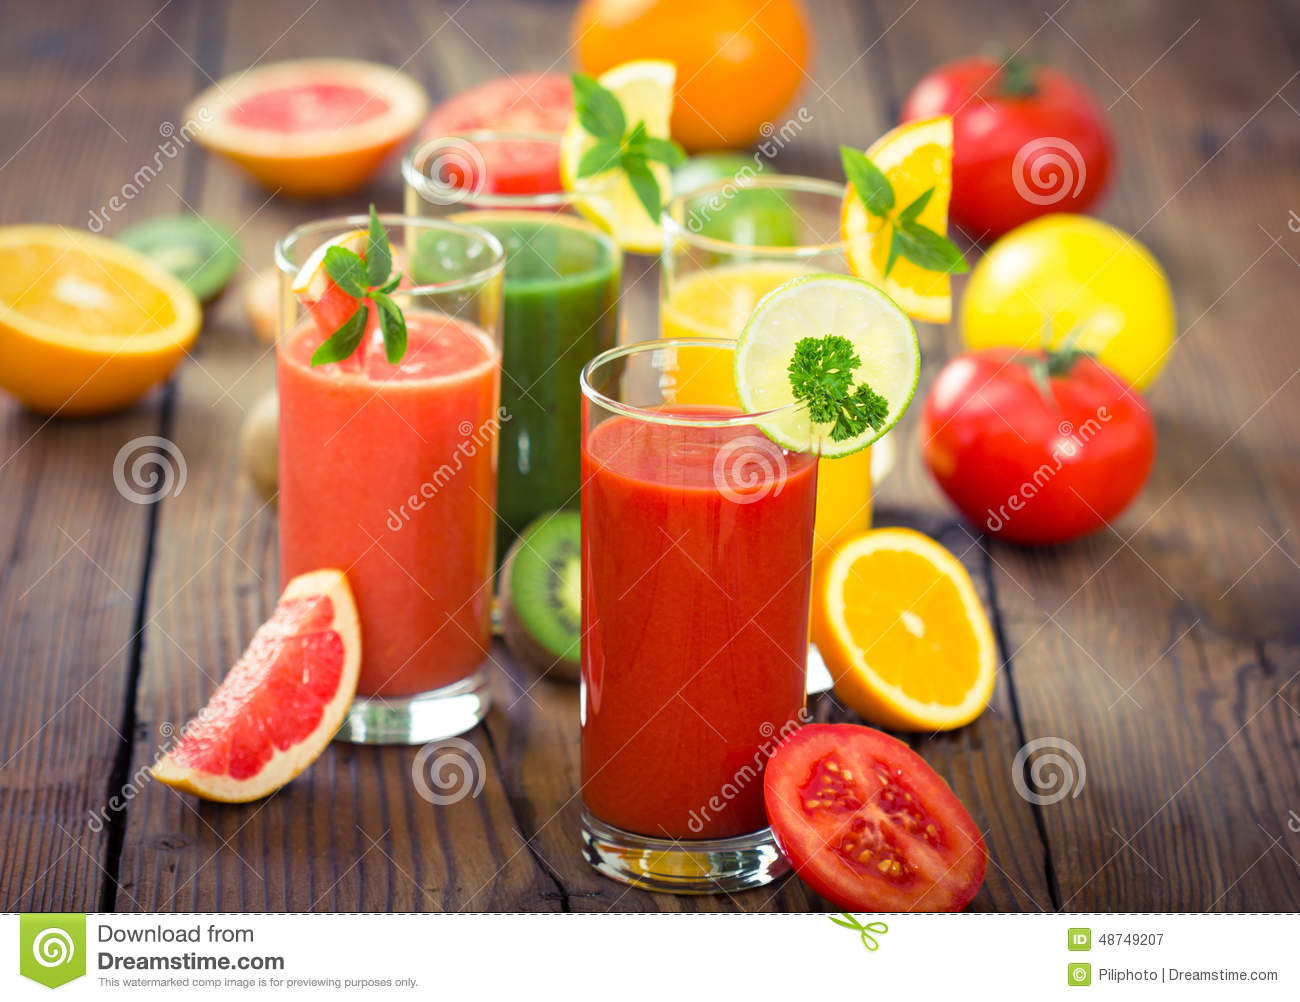 Veg And Fruit Smoothies  Healthy Fruits And Ve ables Smoothies Stock Image